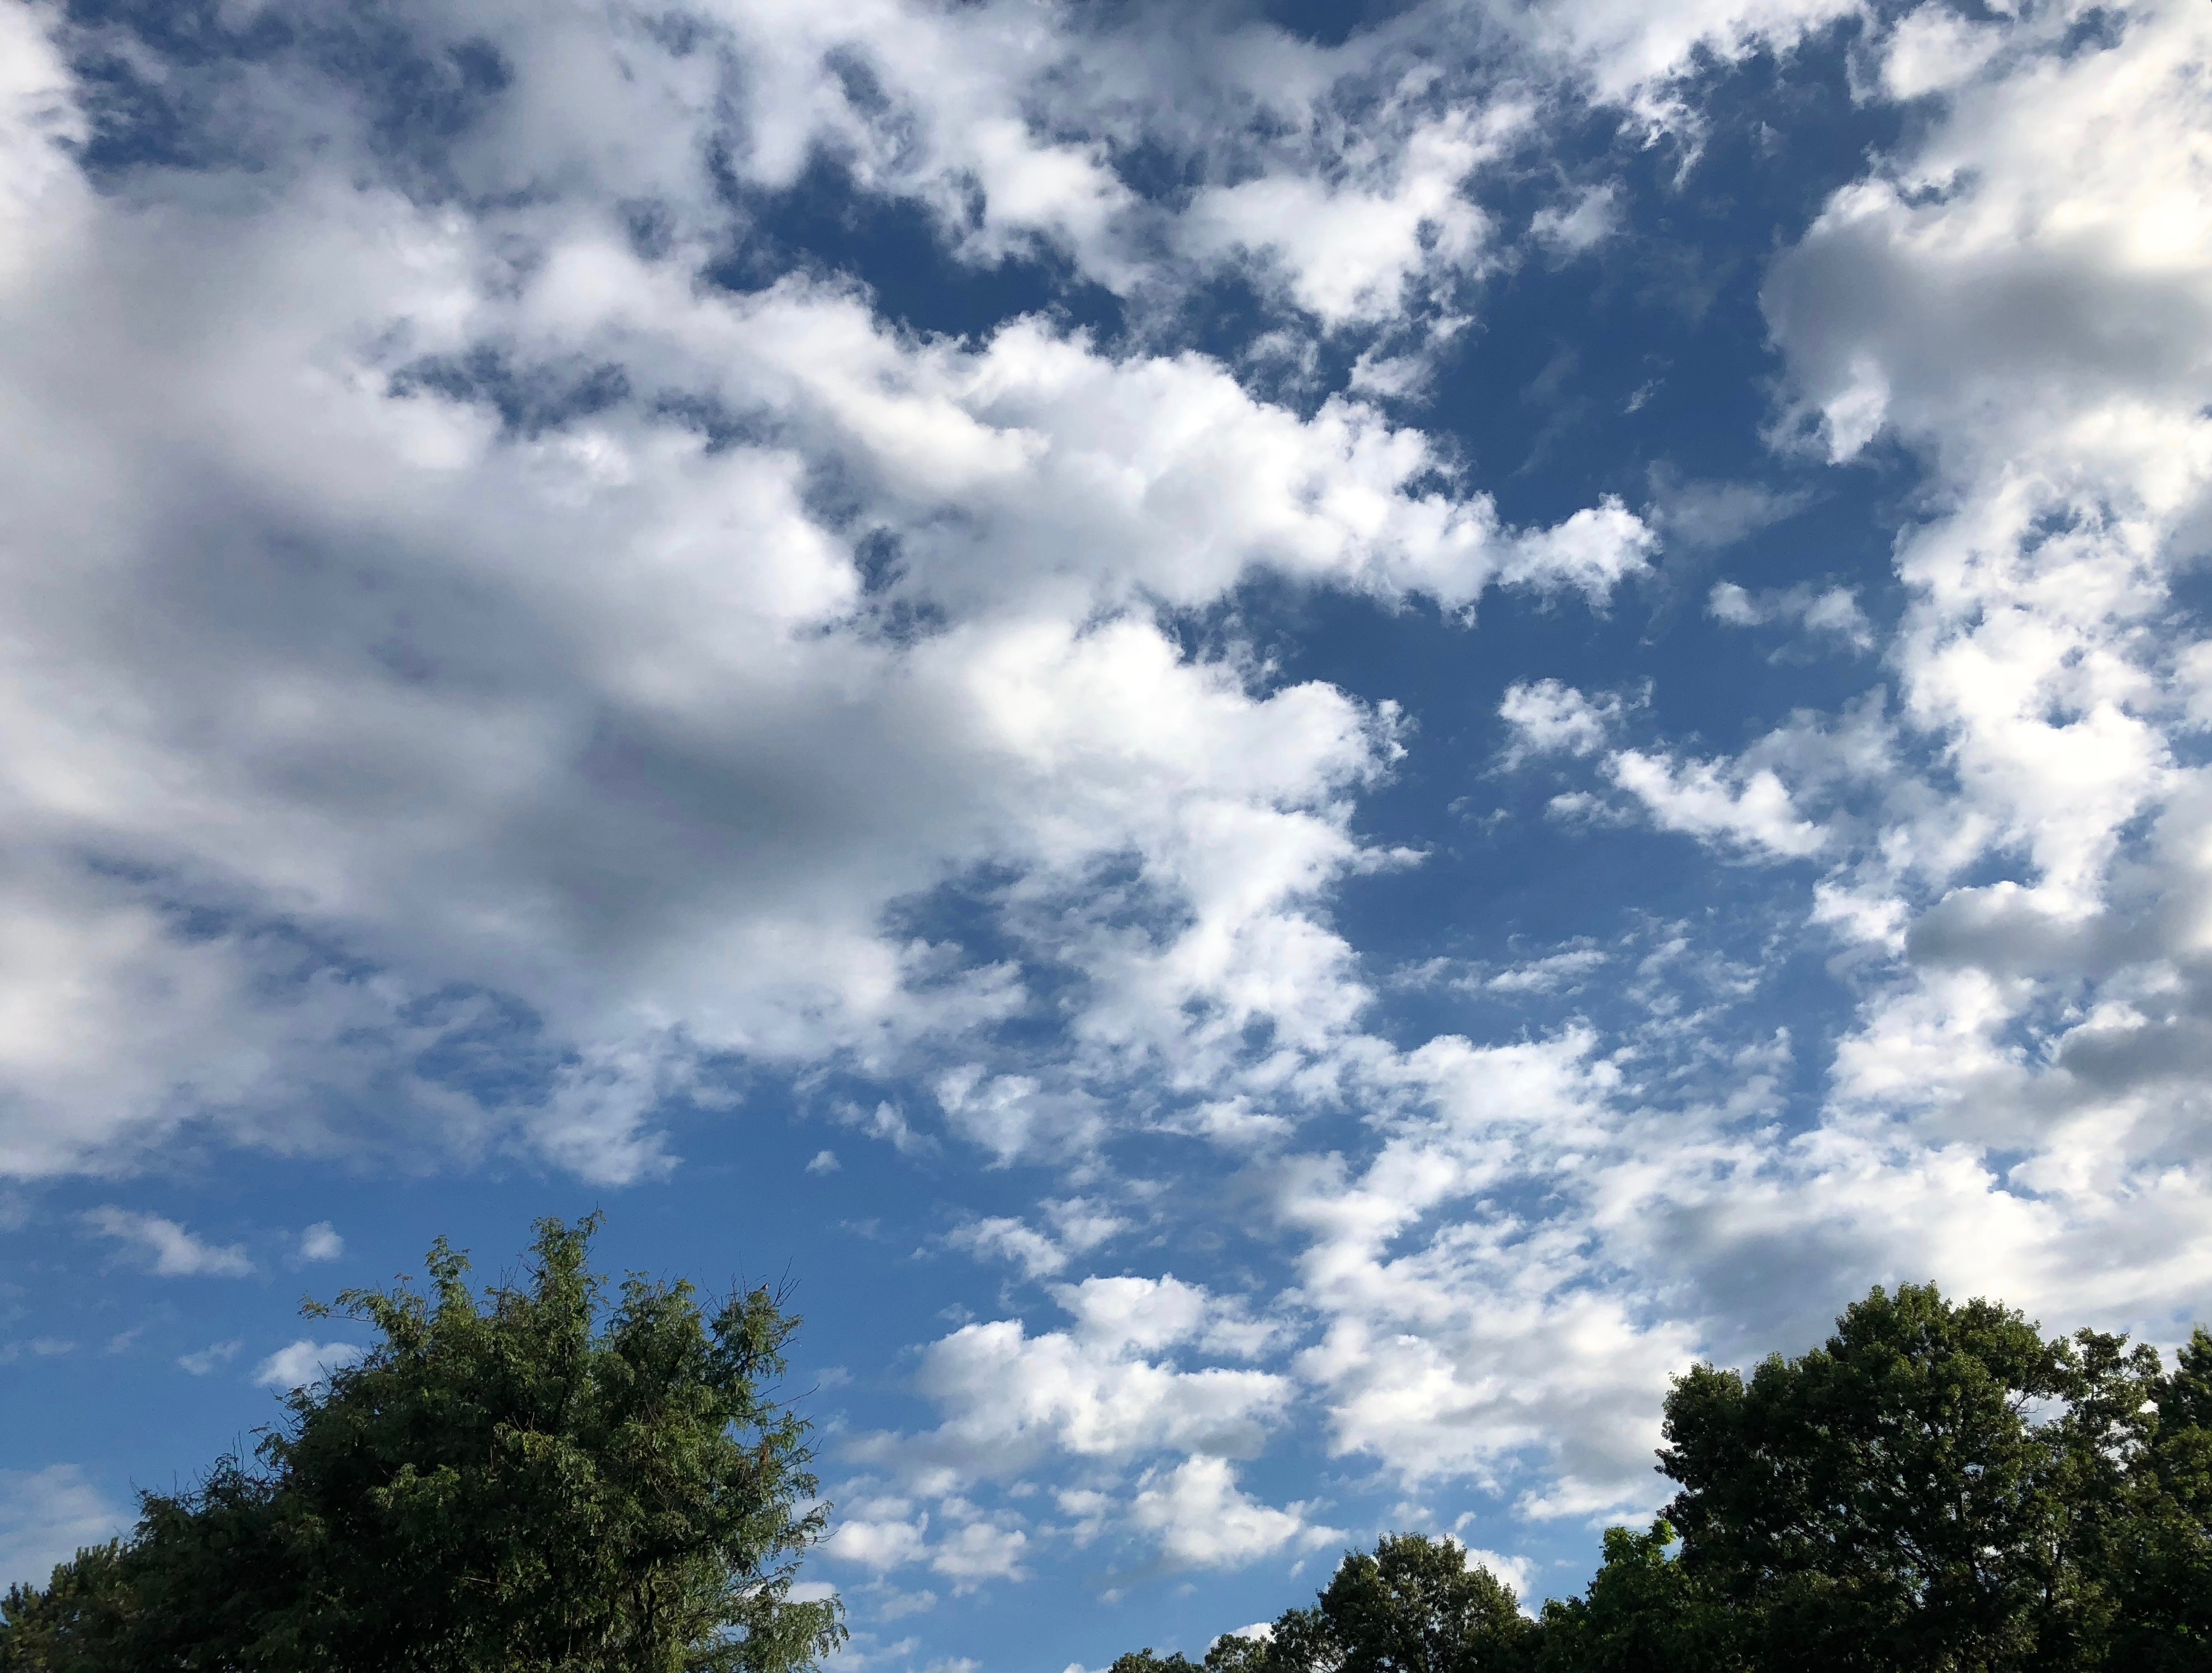 071818-clouds-over-trees 2